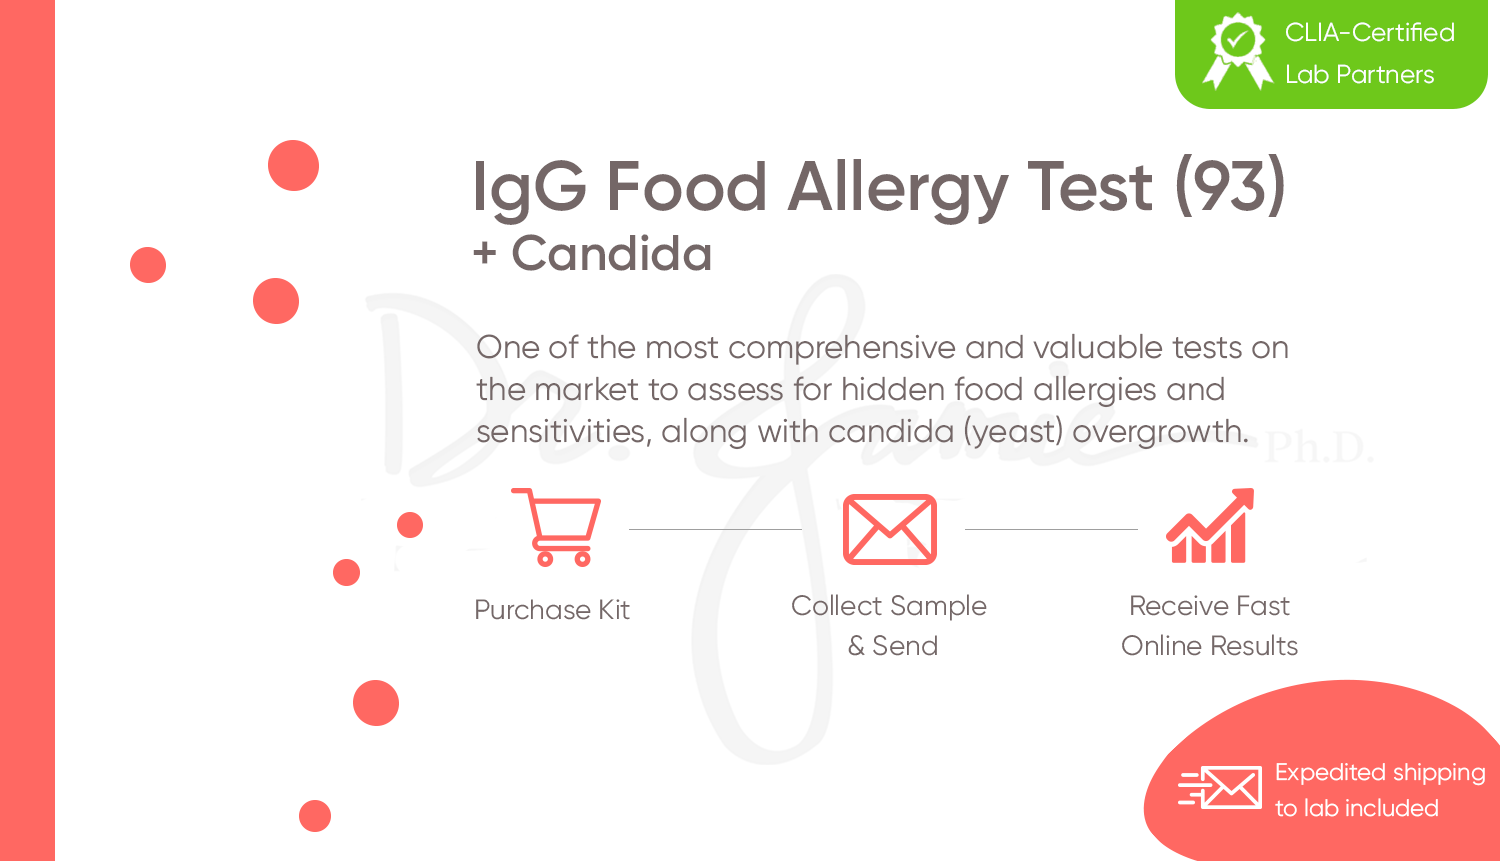 IgG Food Allergy Test (93) + Candida